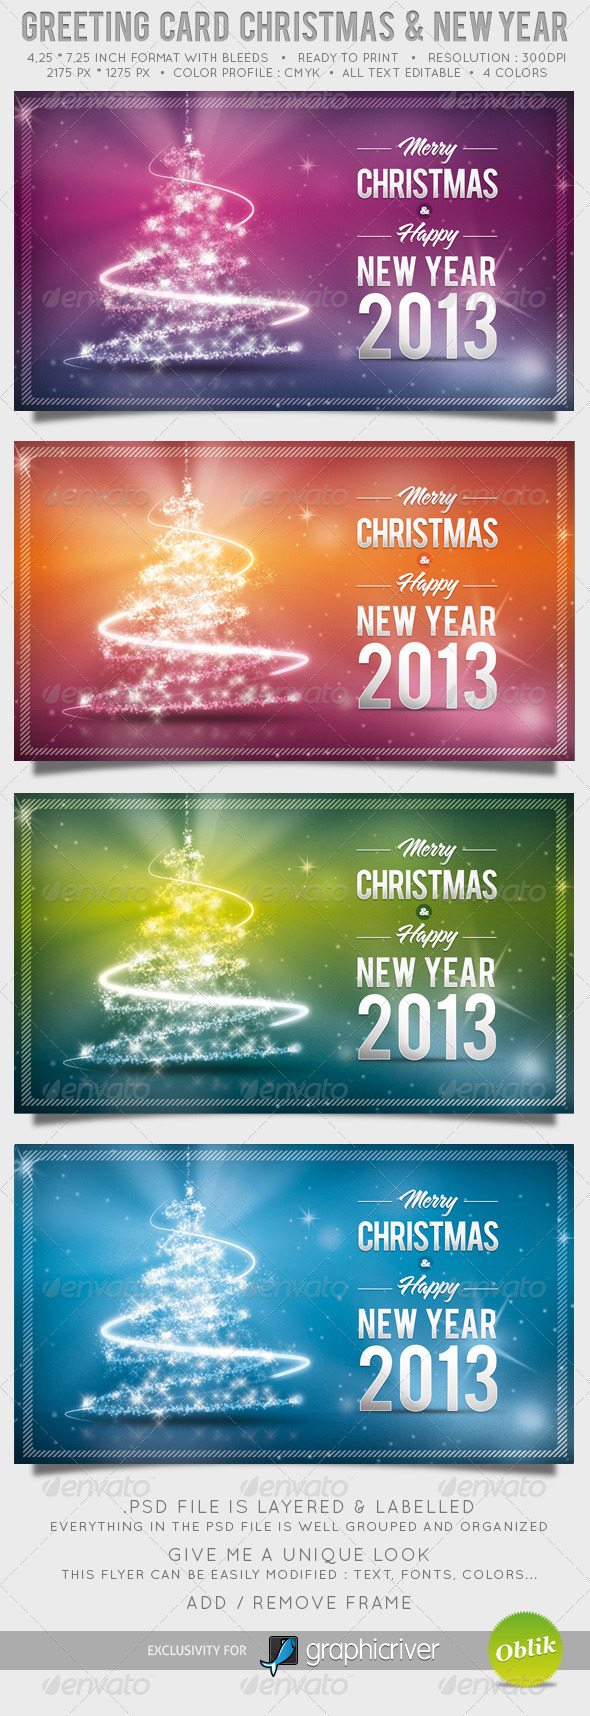  Greeting Card Christmas and New Year 